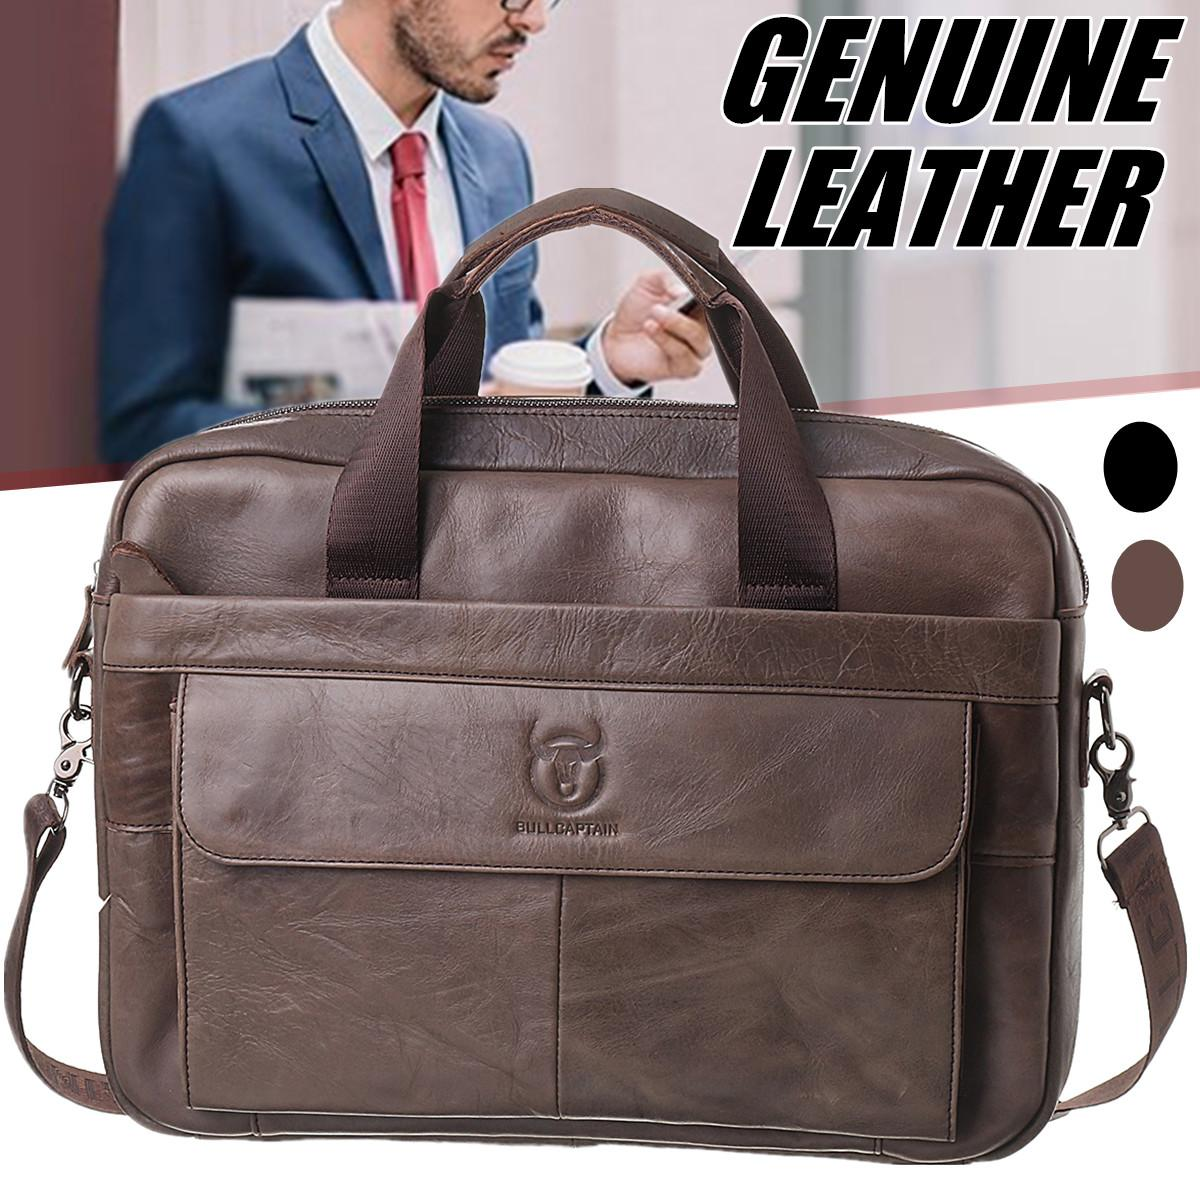 Bags Laptop Crossbody-Bags Leather Briefcase Messenger Business Genuine-Leather Men's